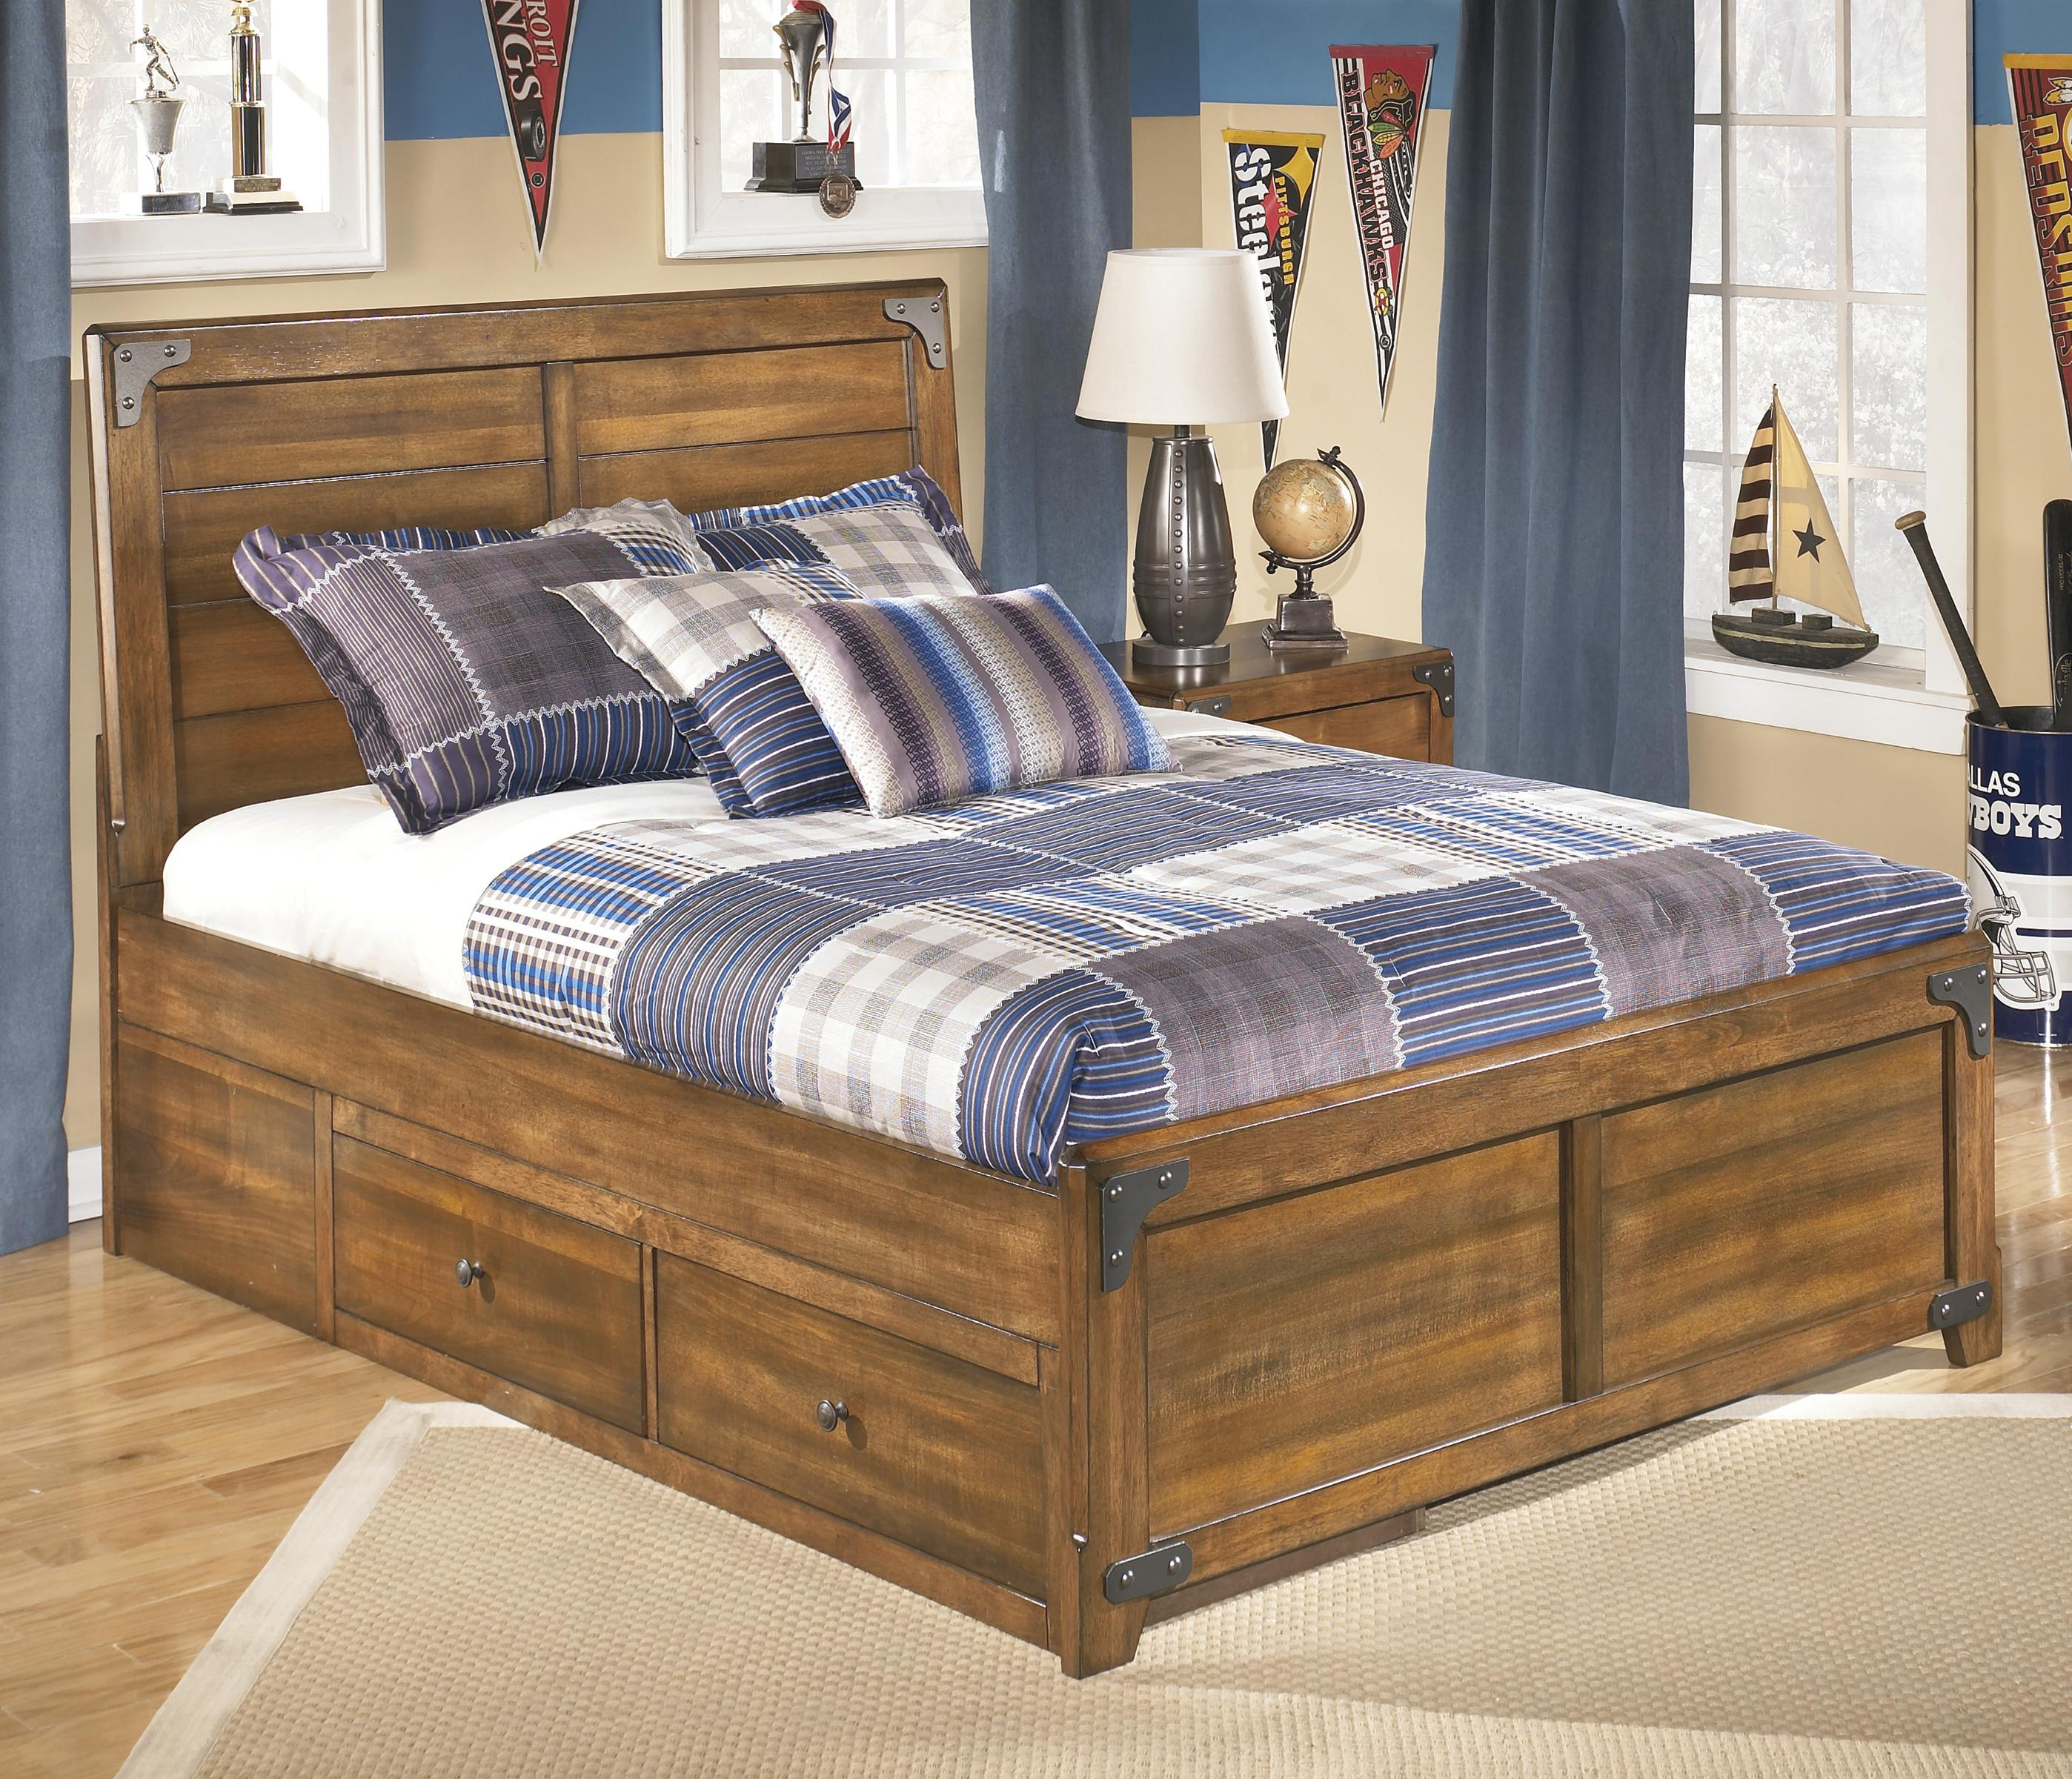 Signature Design by Ashley Cole Full Platform Pedestal Bed with Storage - Item Number: B362-87+50+71